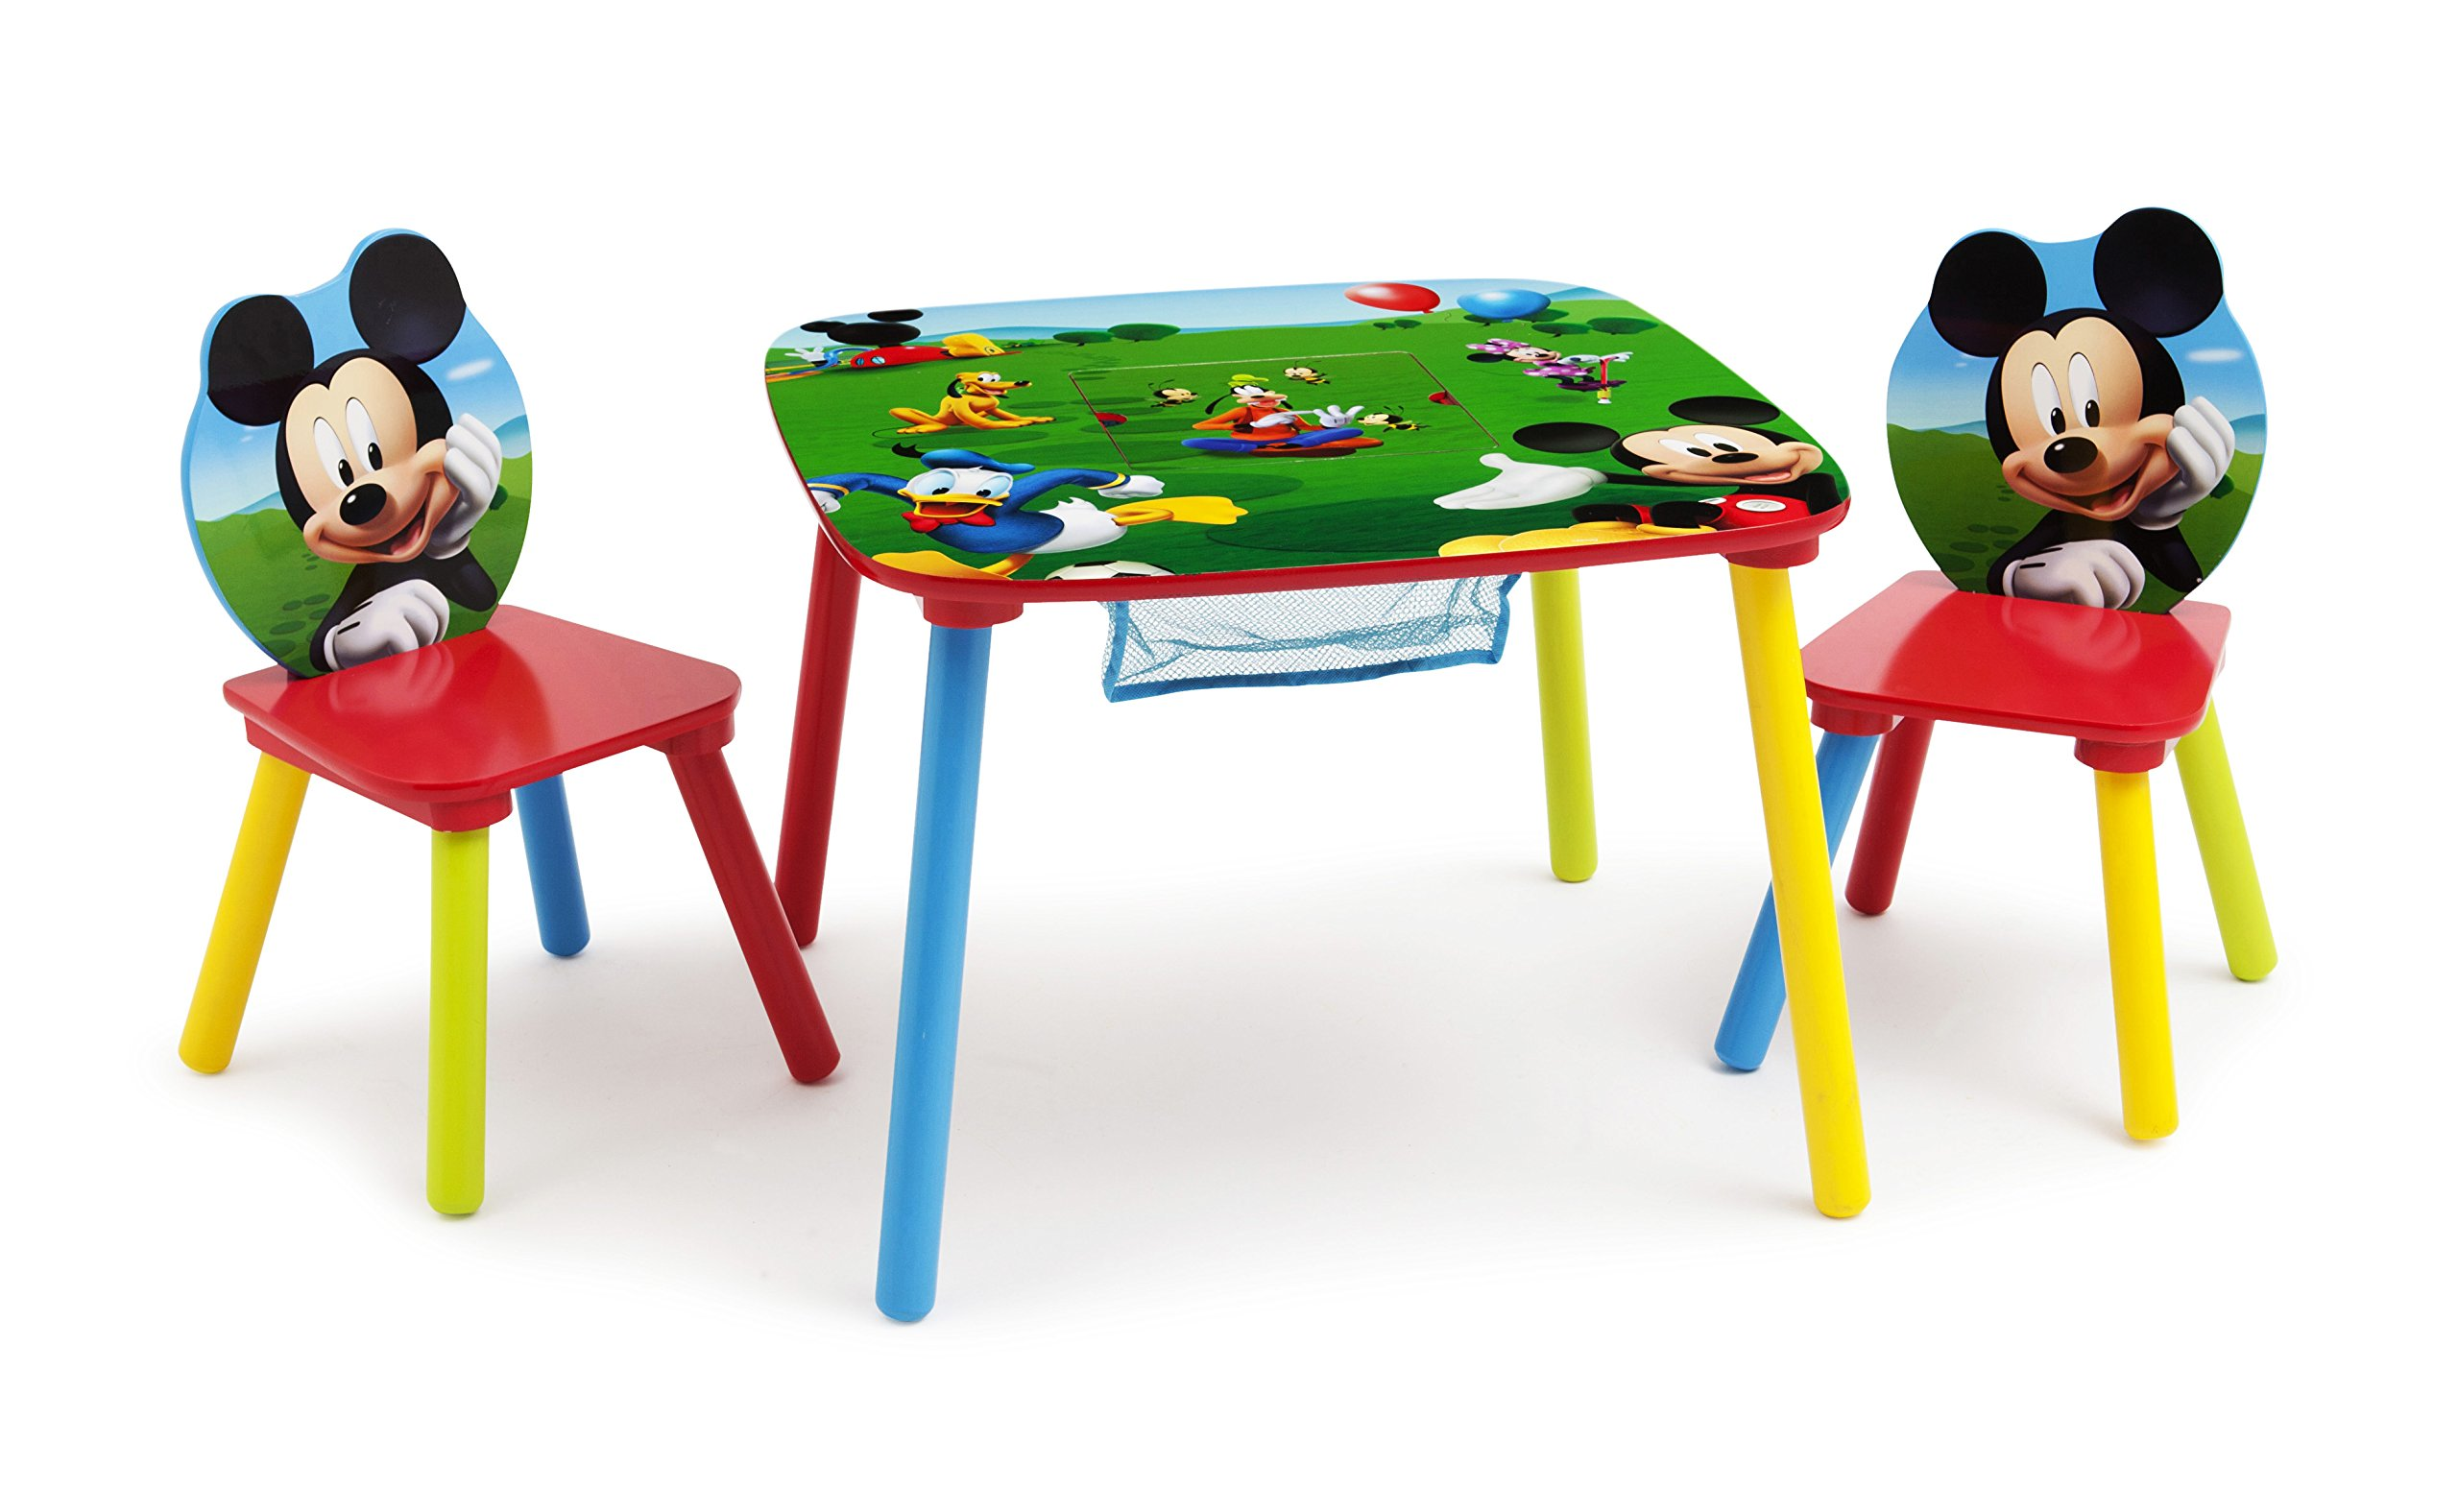 Disney Mickey Mouse Storage Table and Chairs Set by Delta Children